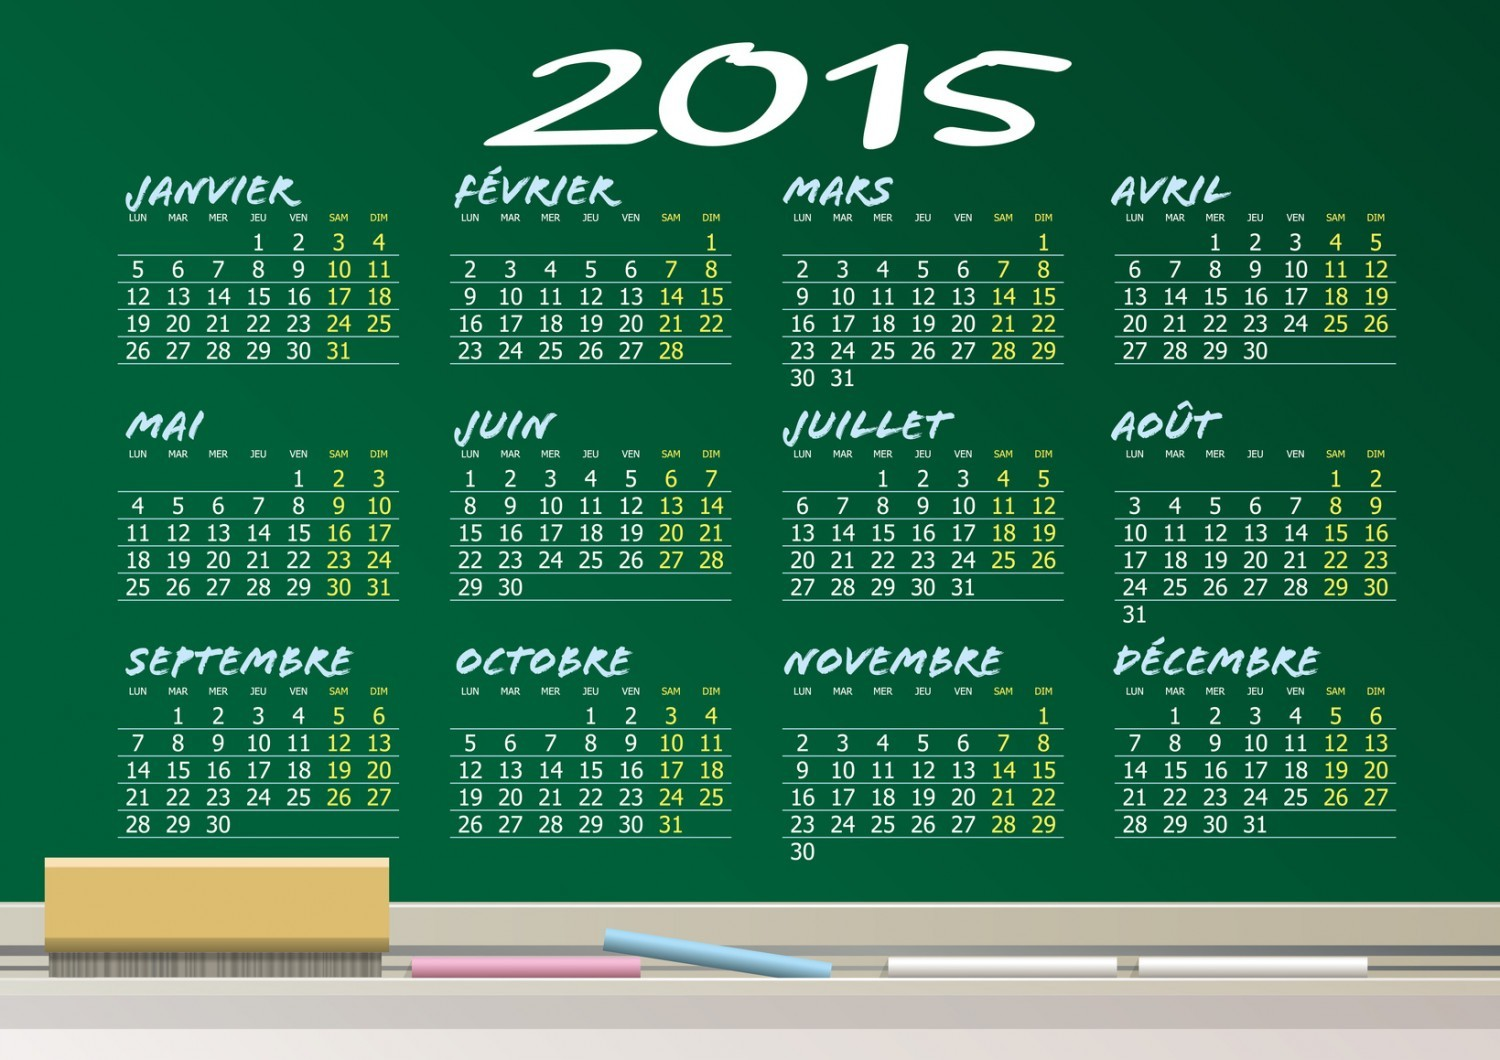 Le calendrier scolaire 2015 2016 remis en discussion - Vacances de fevrier 2015 ...